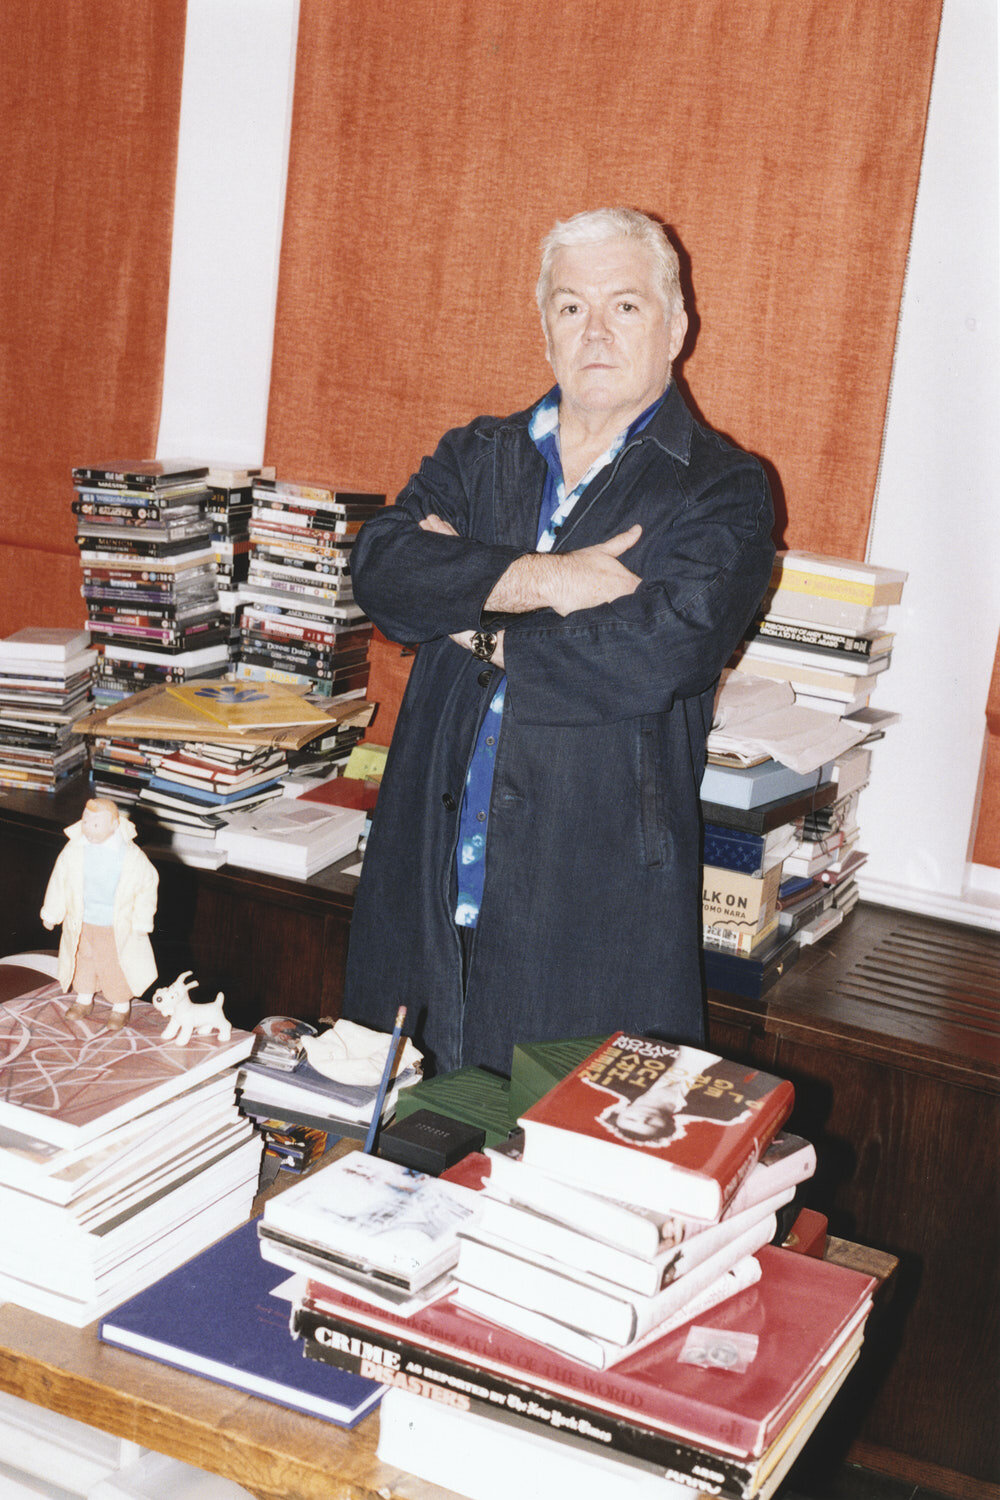 Tim Blanks by Lorenzo Dalbosco